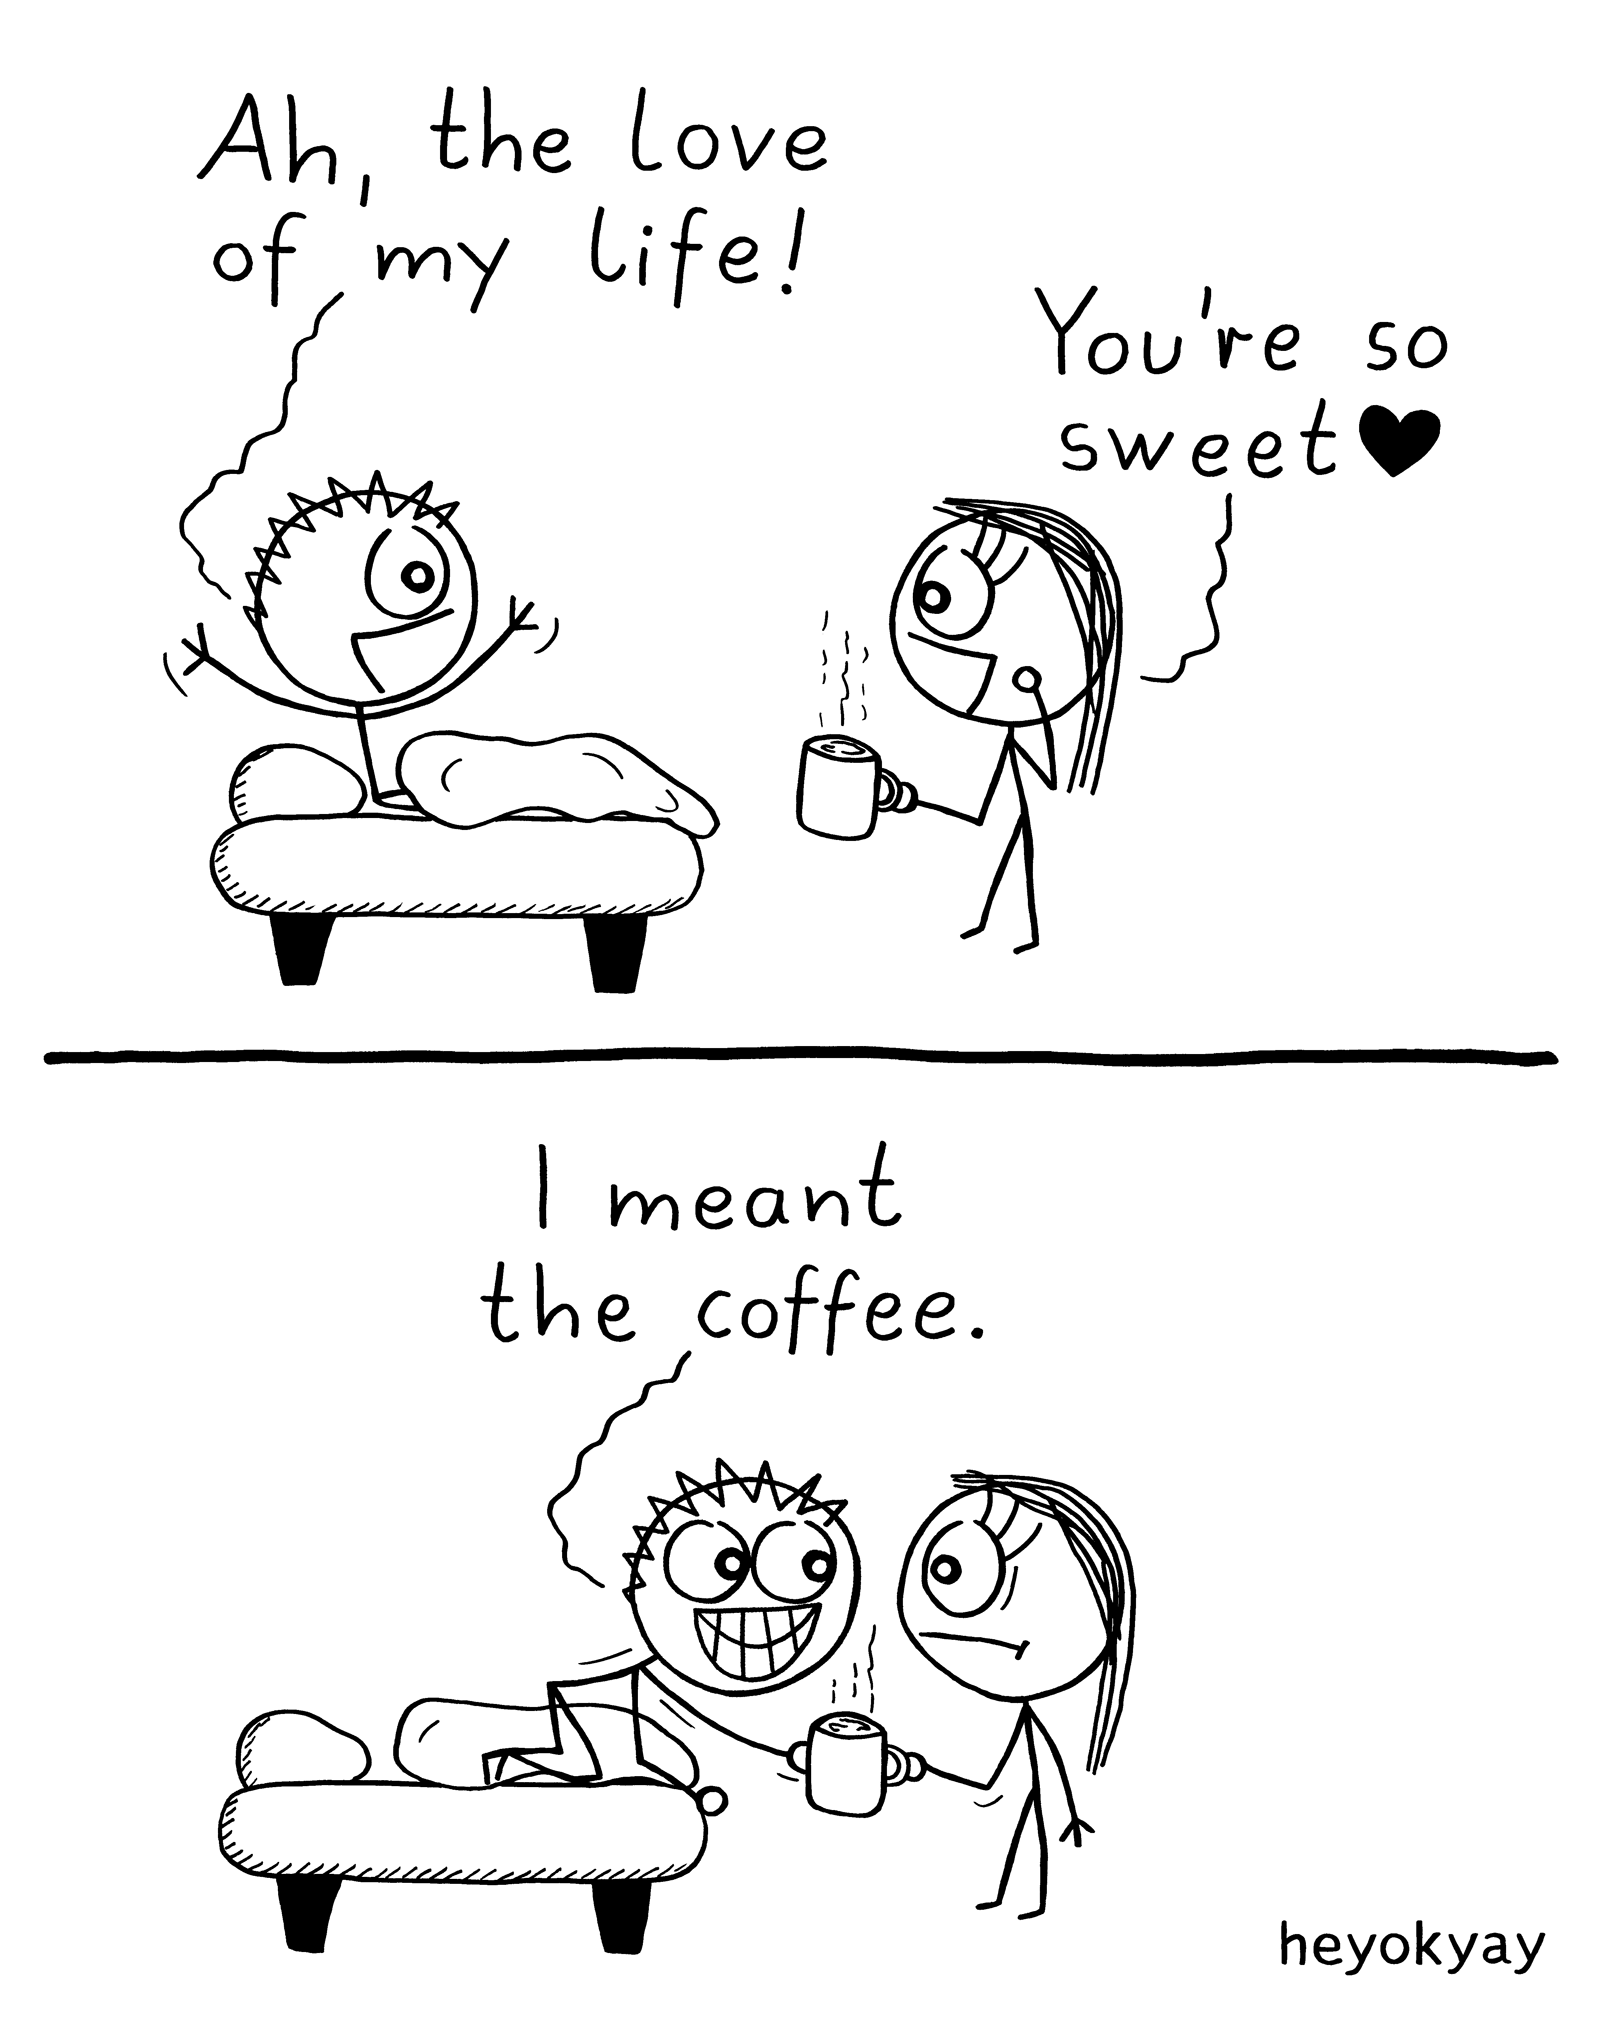 Ah, the love of my life! You're so sweet. I meant the coffee. - True love heyokyay comic